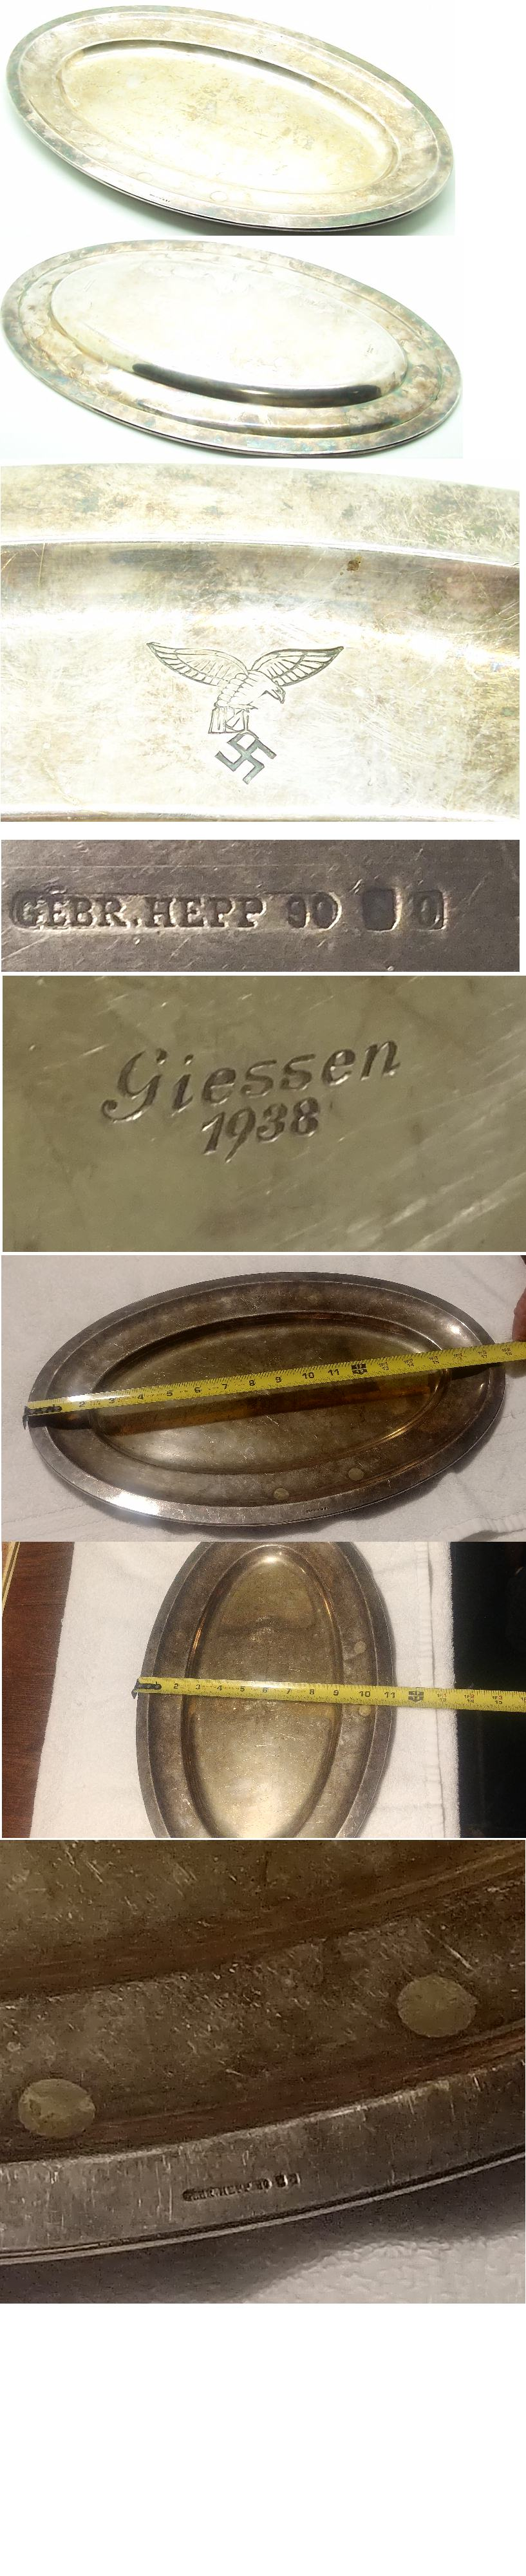 Luftwaffe Silver Serving Platter by Gebr. Hepp 1938